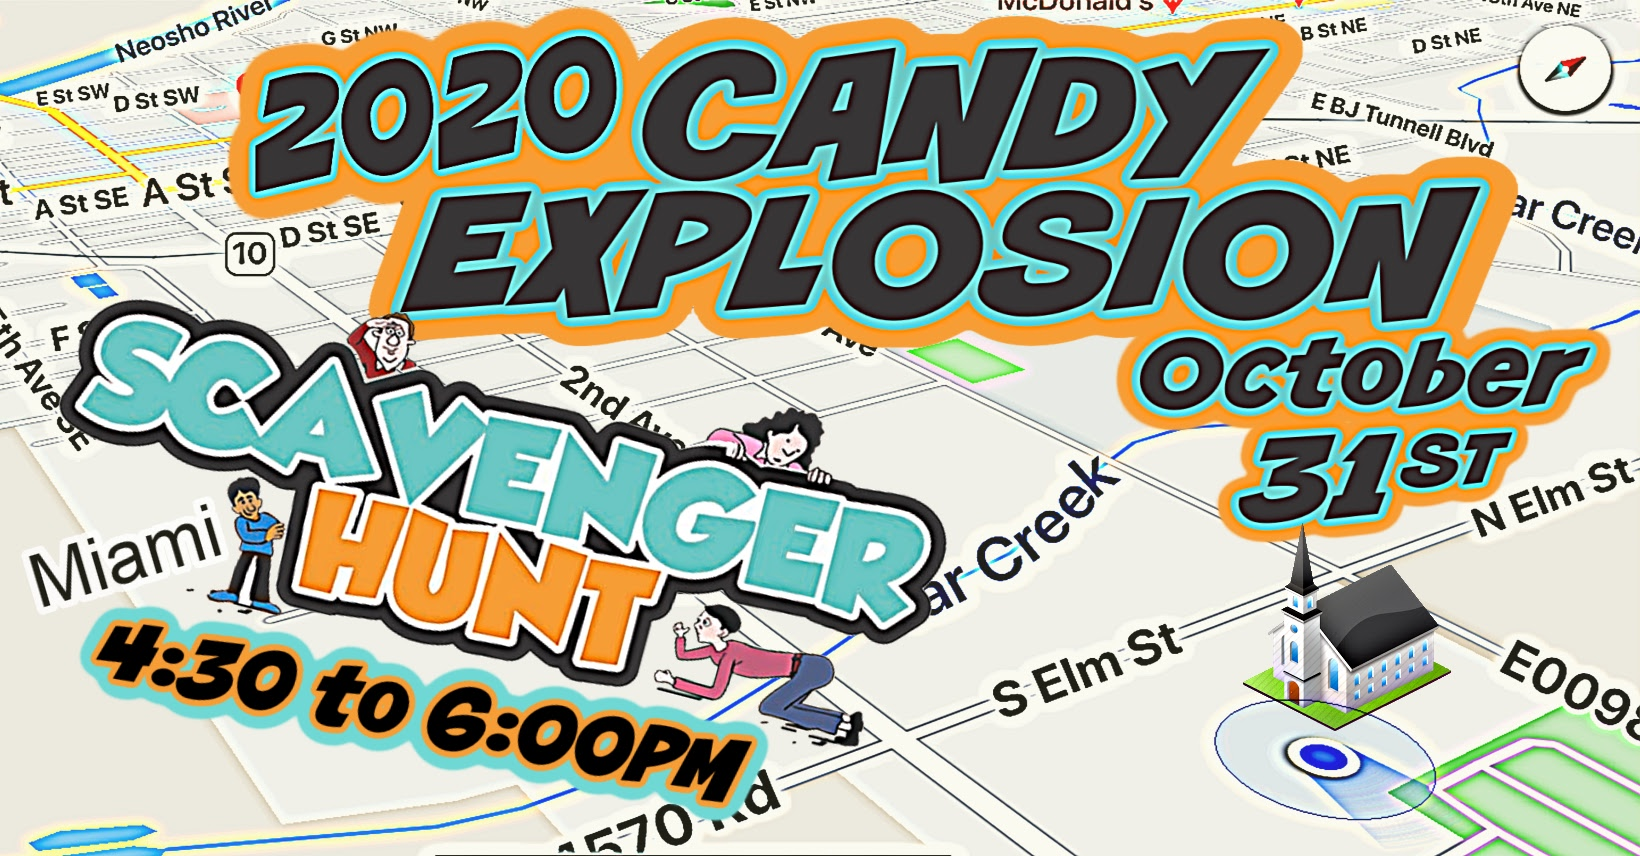 Candy Explosion Scavenger Hunt Oct